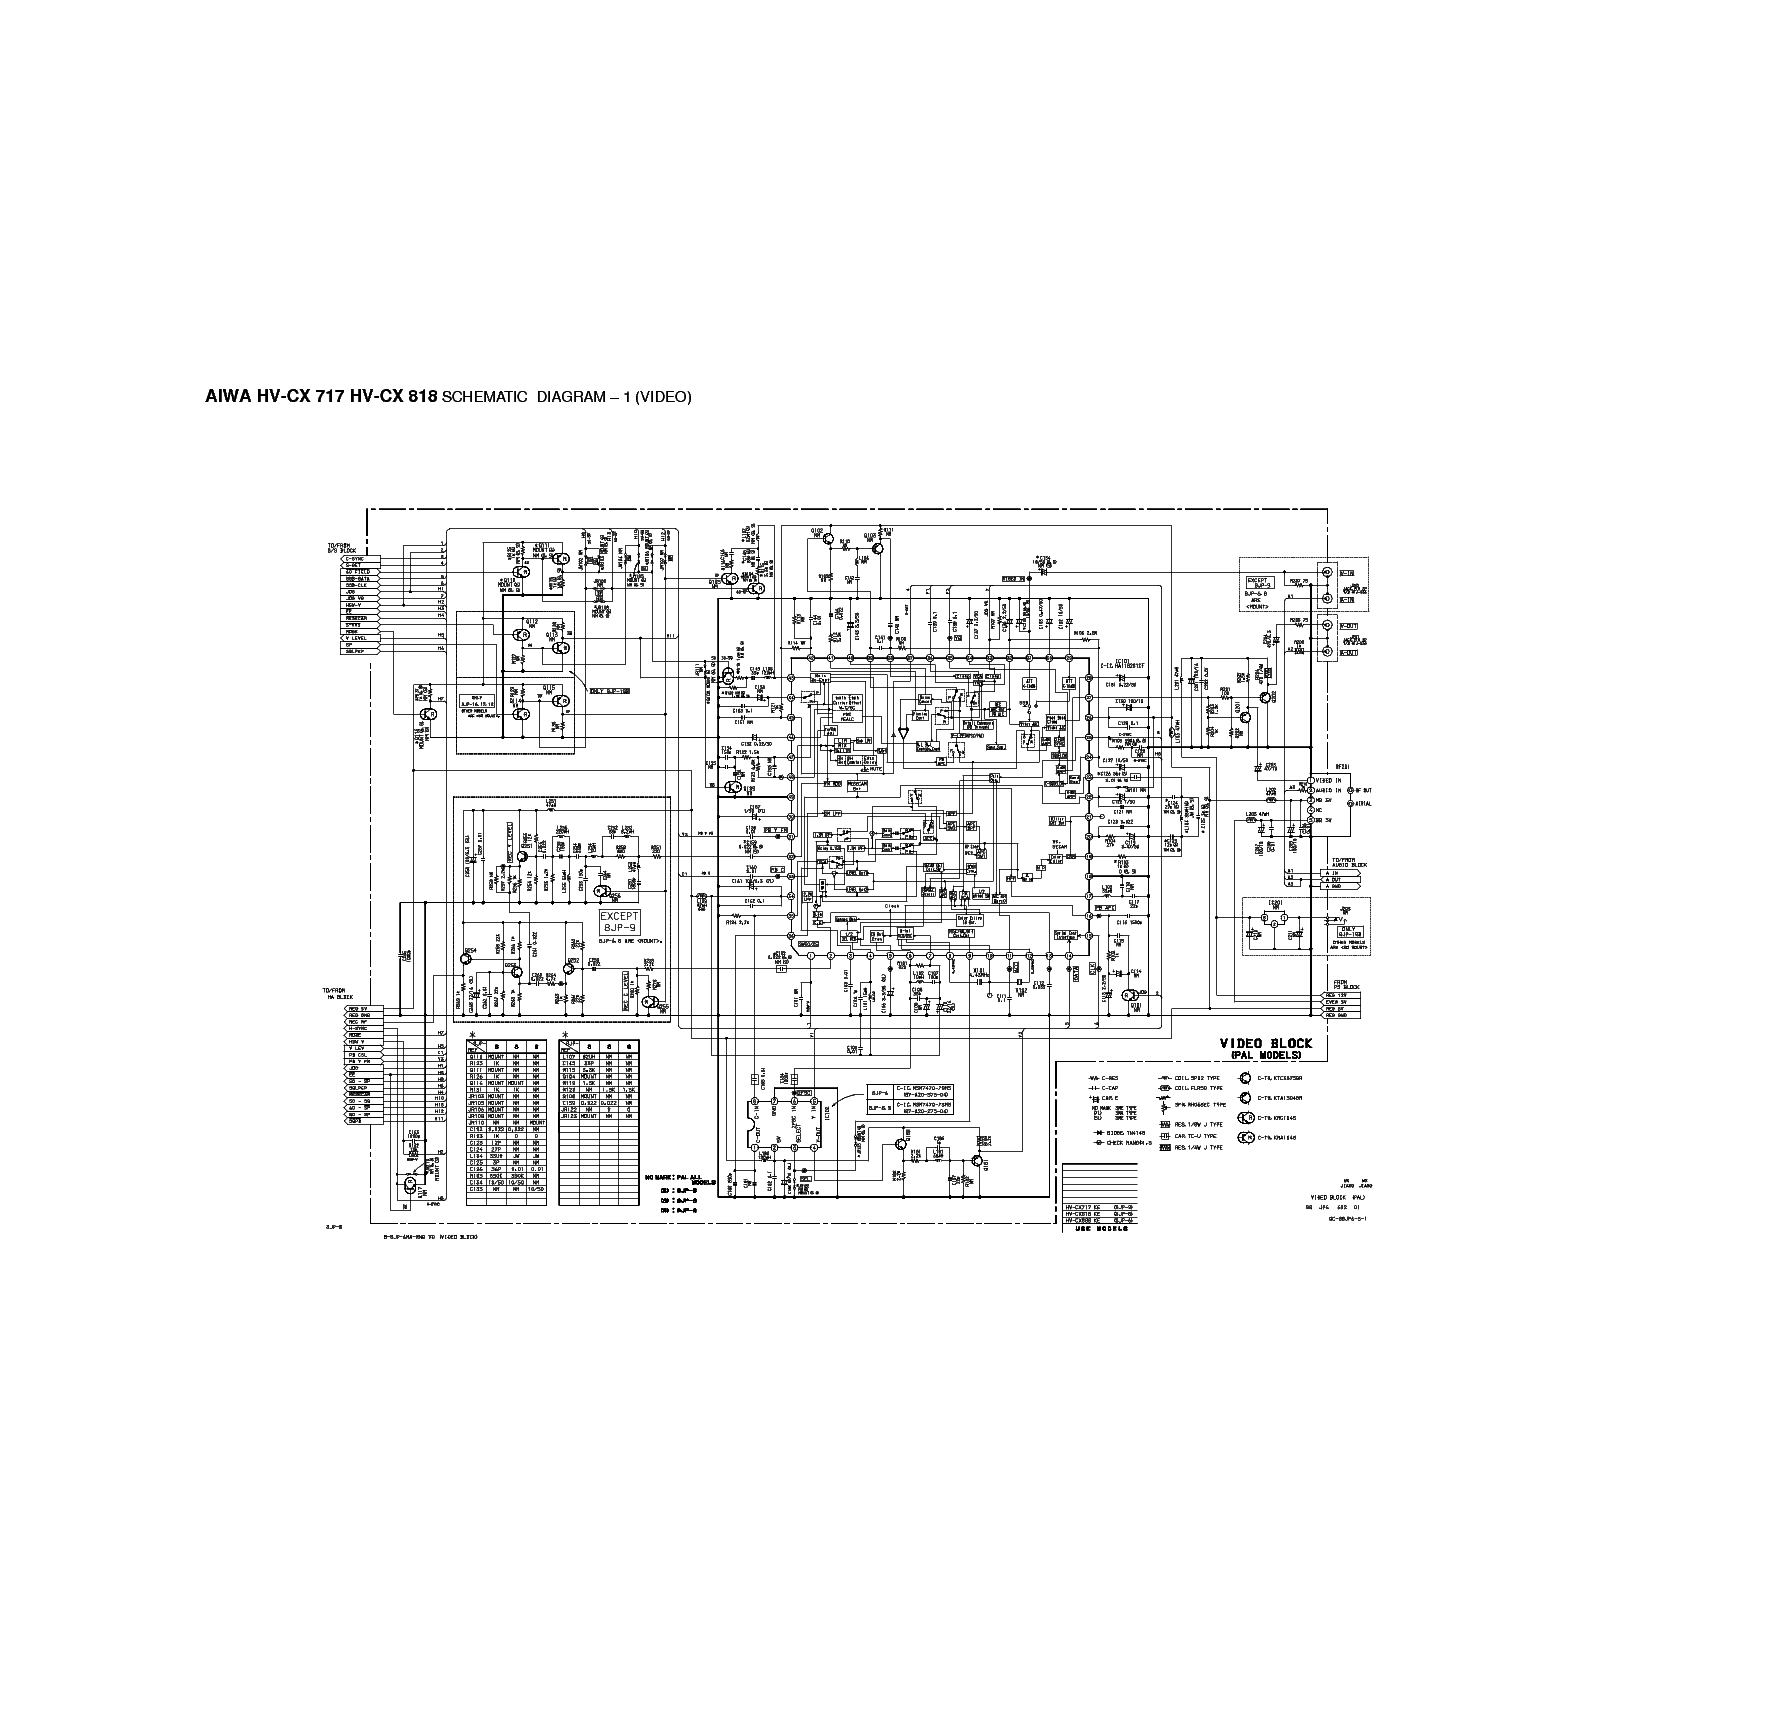 AIWA XD-DV370 Service Manual download, schematics, eeprom